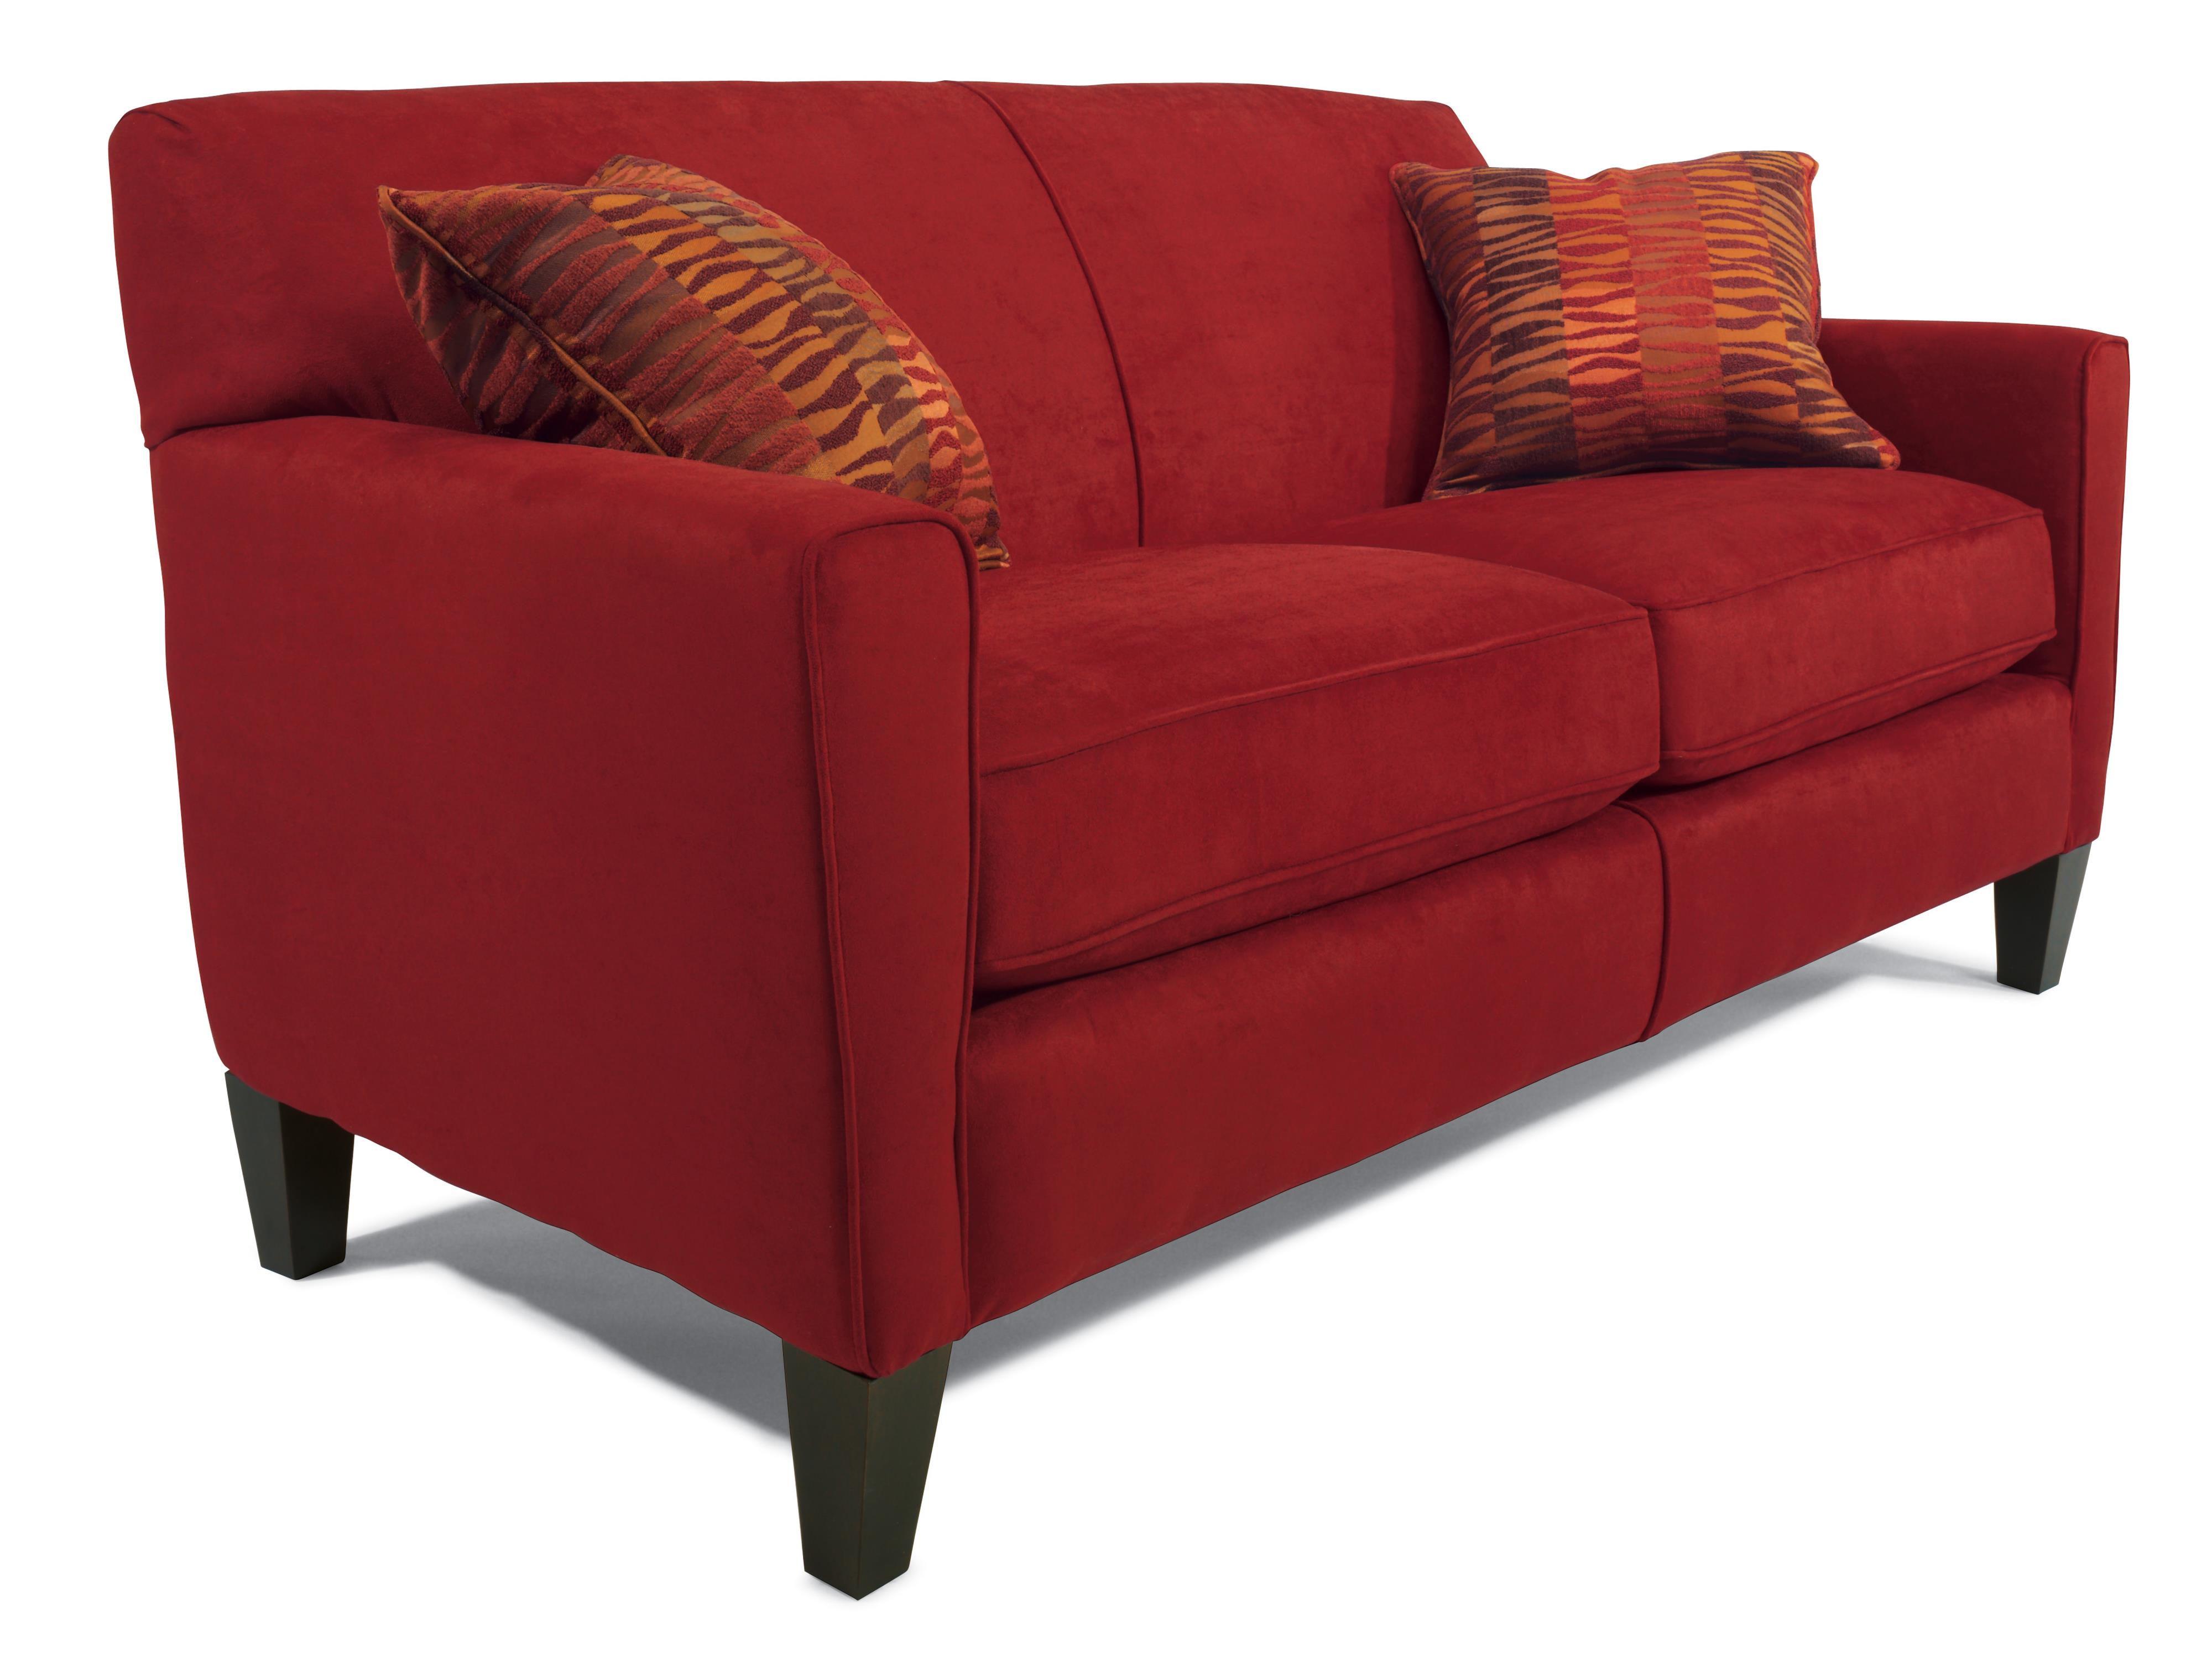 "Flexsteel Digby 70"" Sofa w/ Two Cushions - Item Number: 596630"